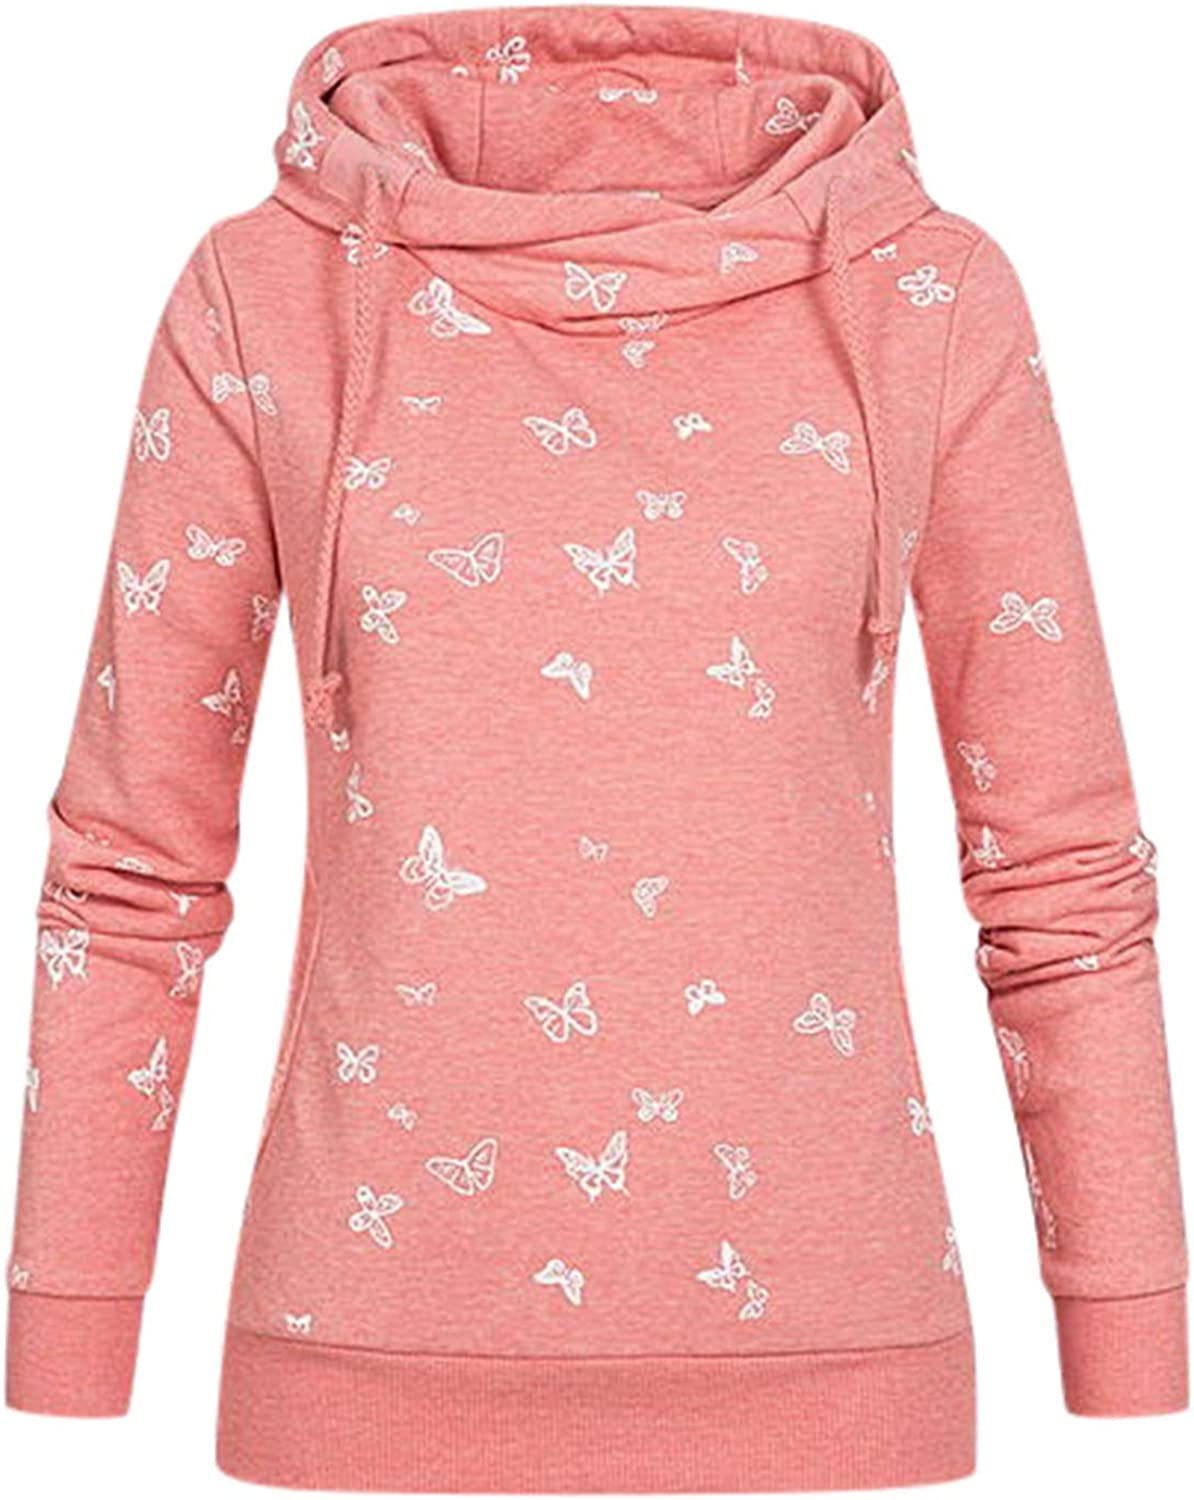 Haheyrte Hoodies for Womens Cute Comfy Print Drawstring Fit Long Sleeve Casual Sweatshirts Pullover Tops Shirts Sweaters